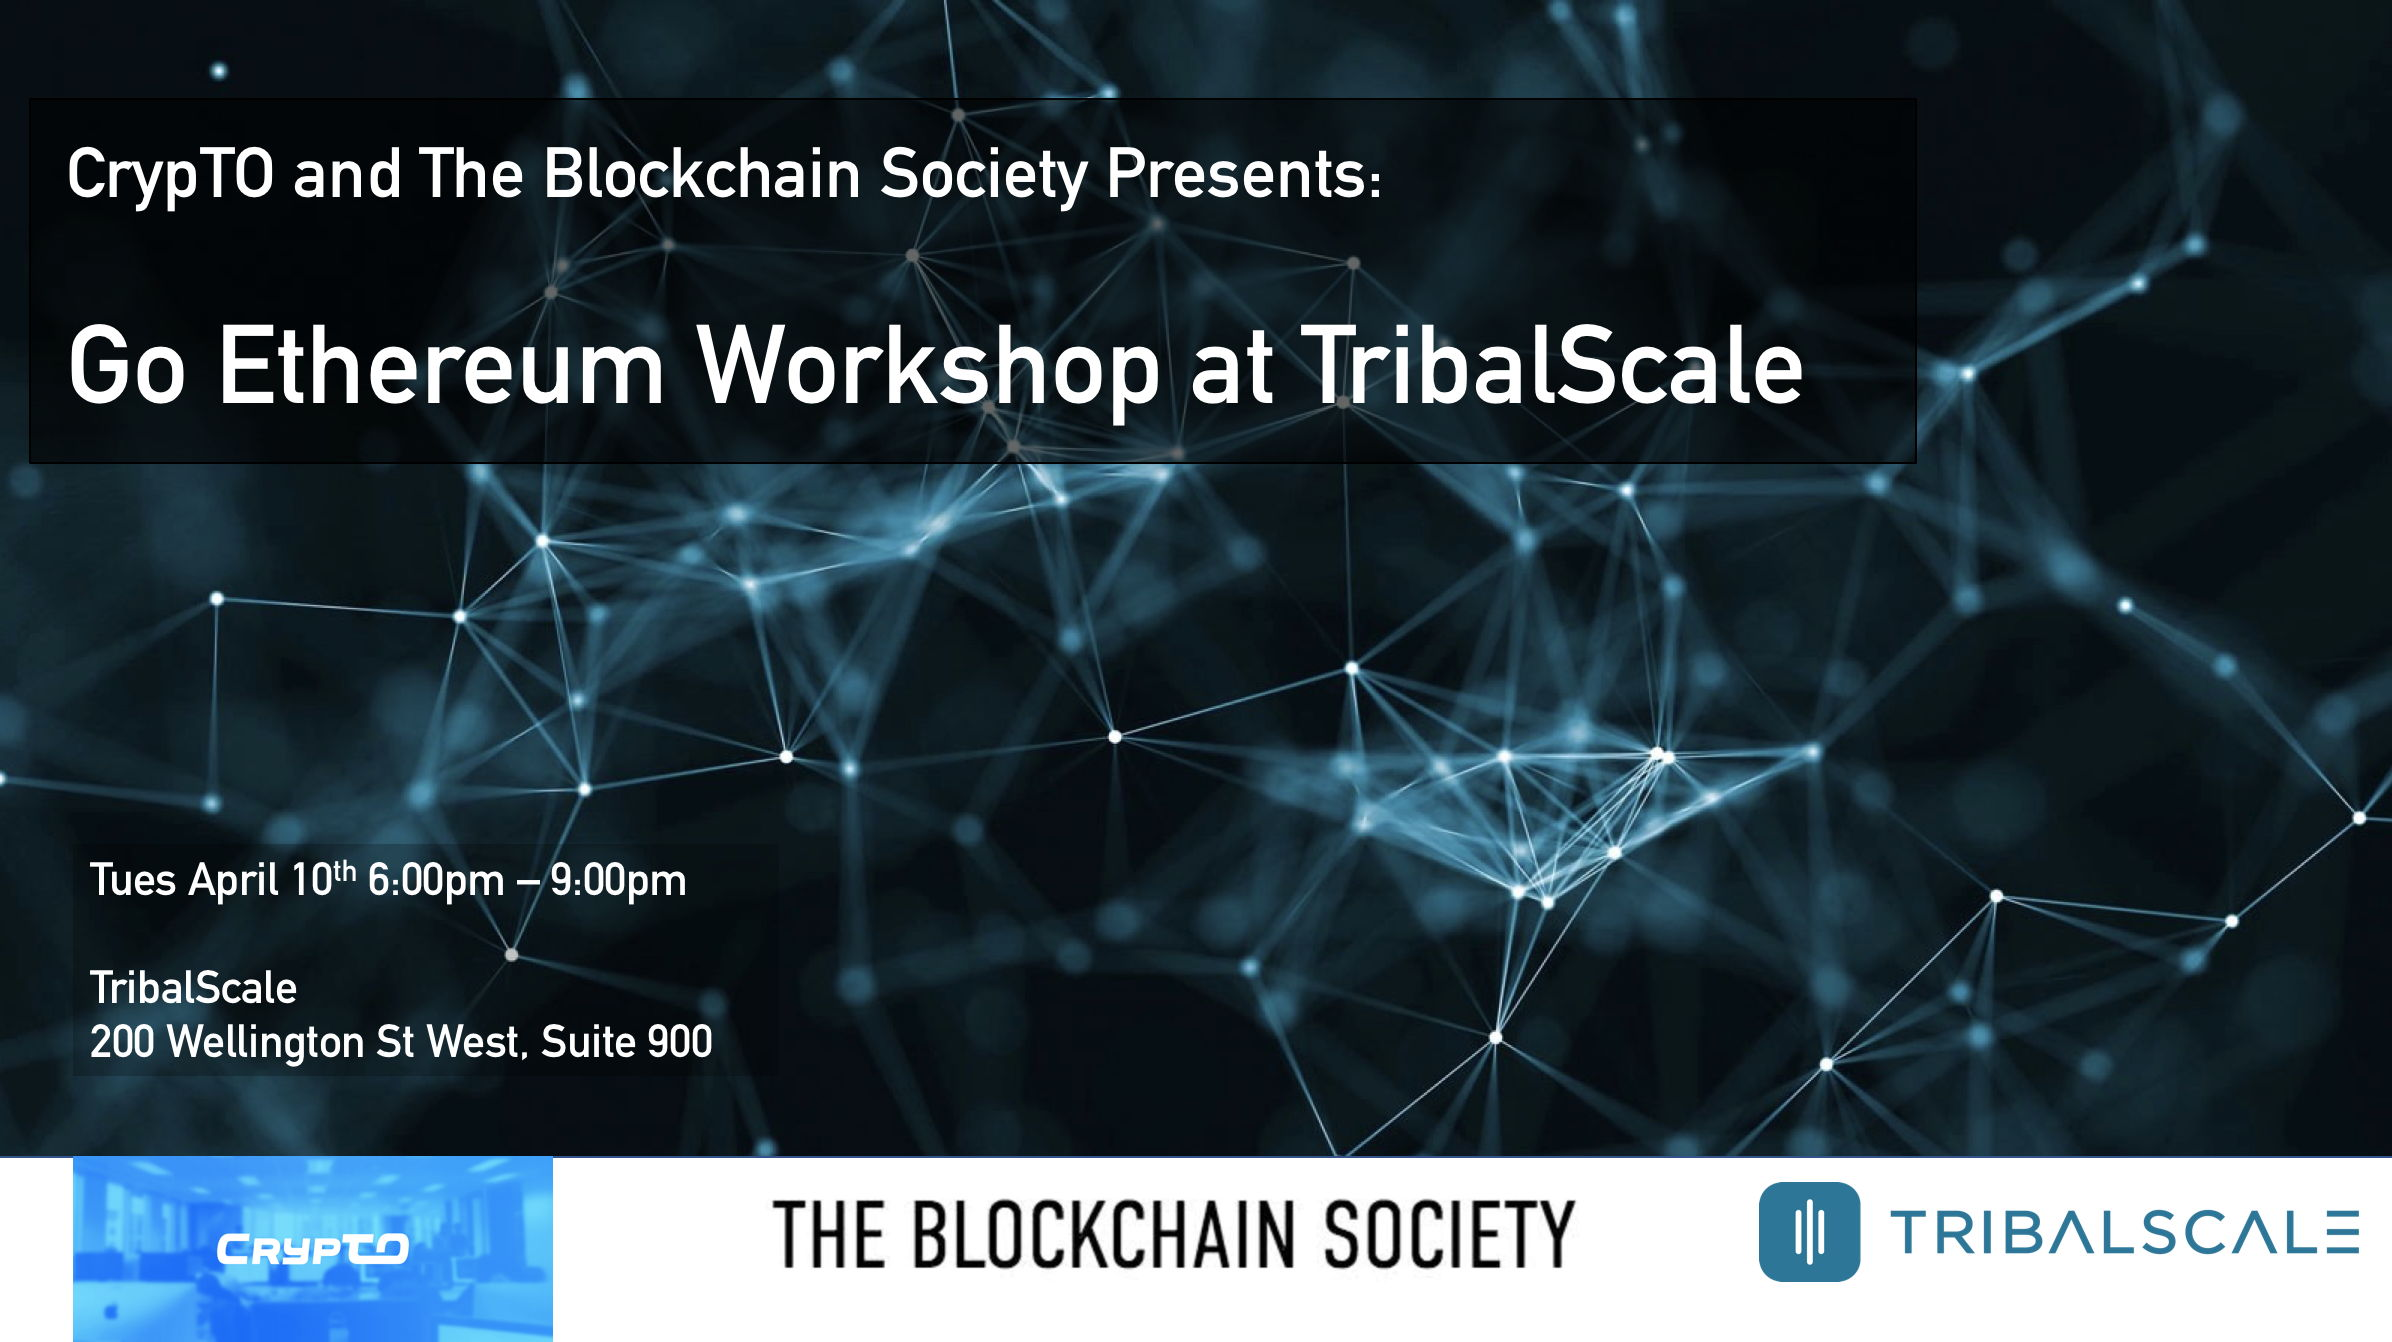 CrypTO x The Blockchain Society present: Ethereum Workshop at TribalScale